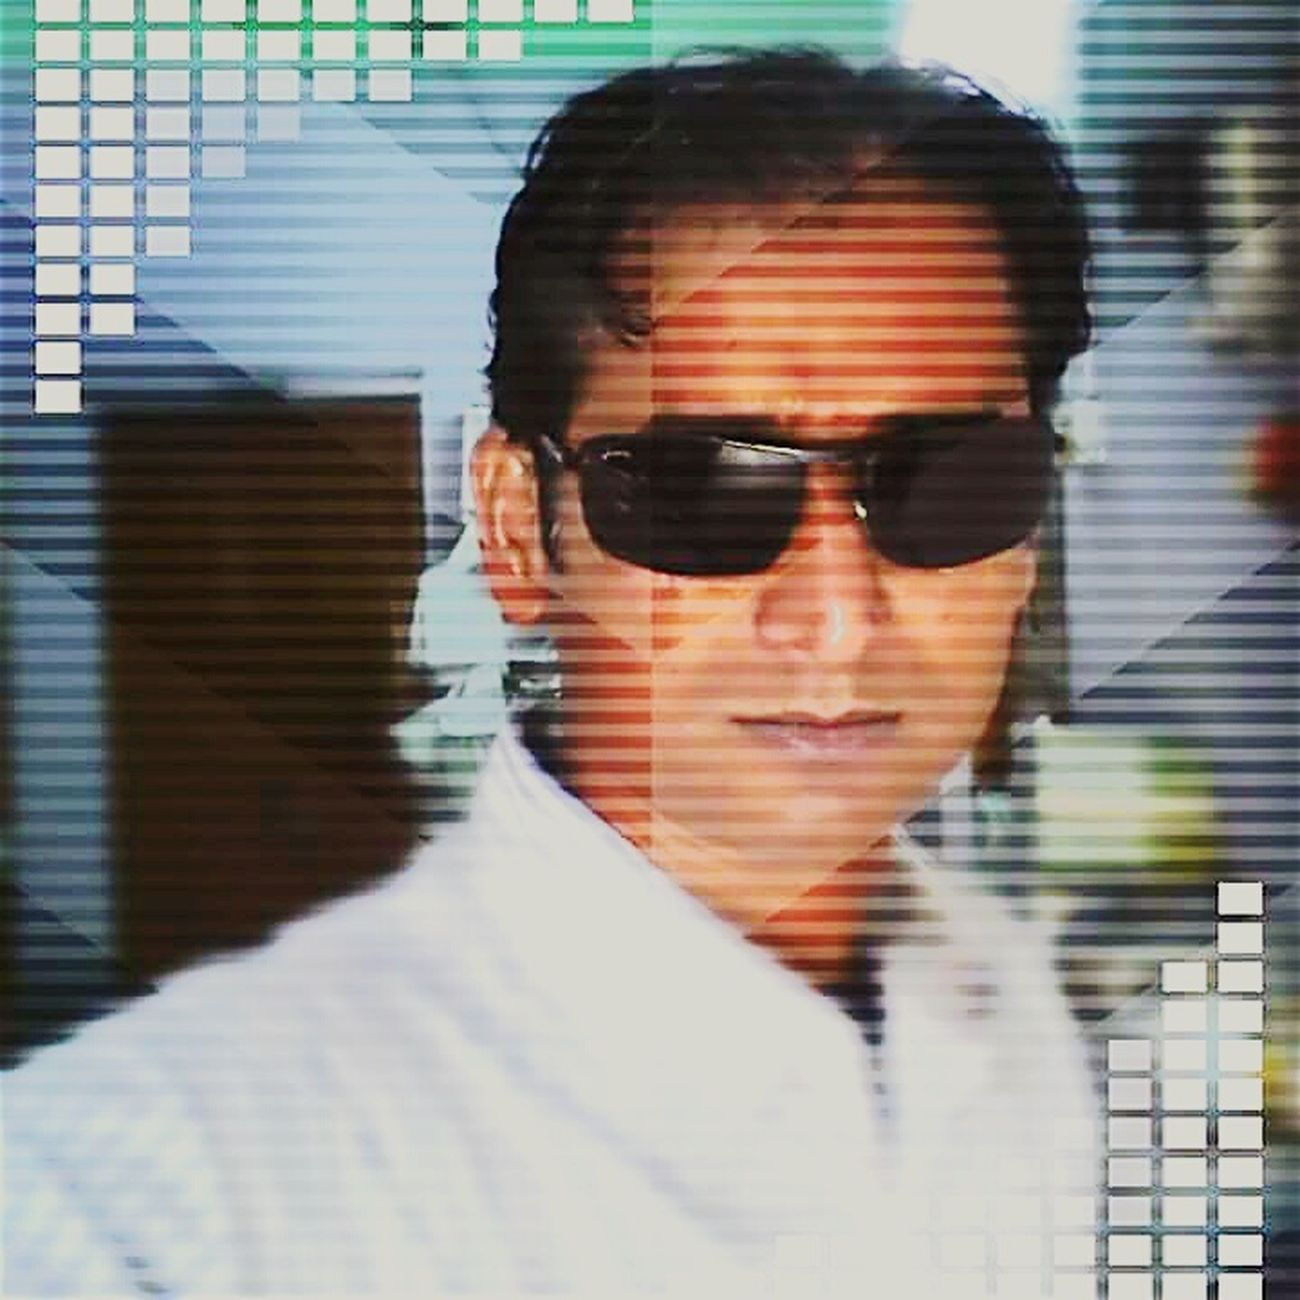 What if I upload Selfie ♡♥← That's Me Matrix Reloaded Hello World Taking Photos Attitude Hanging Out Check This Out Enjoying Life Hi! Relaxing